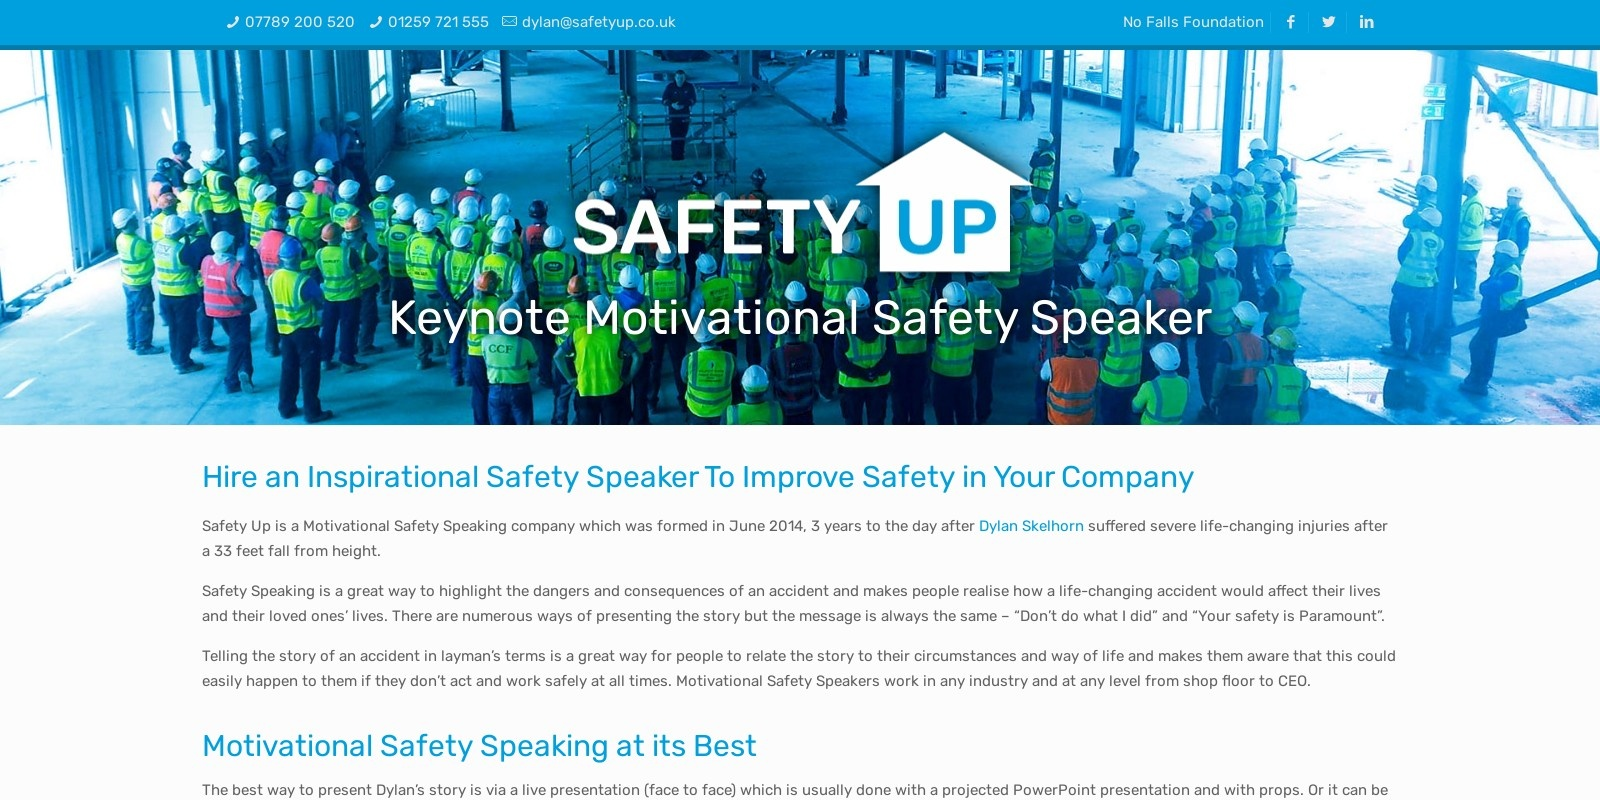 Preview of https://www.safetyup.co.uk